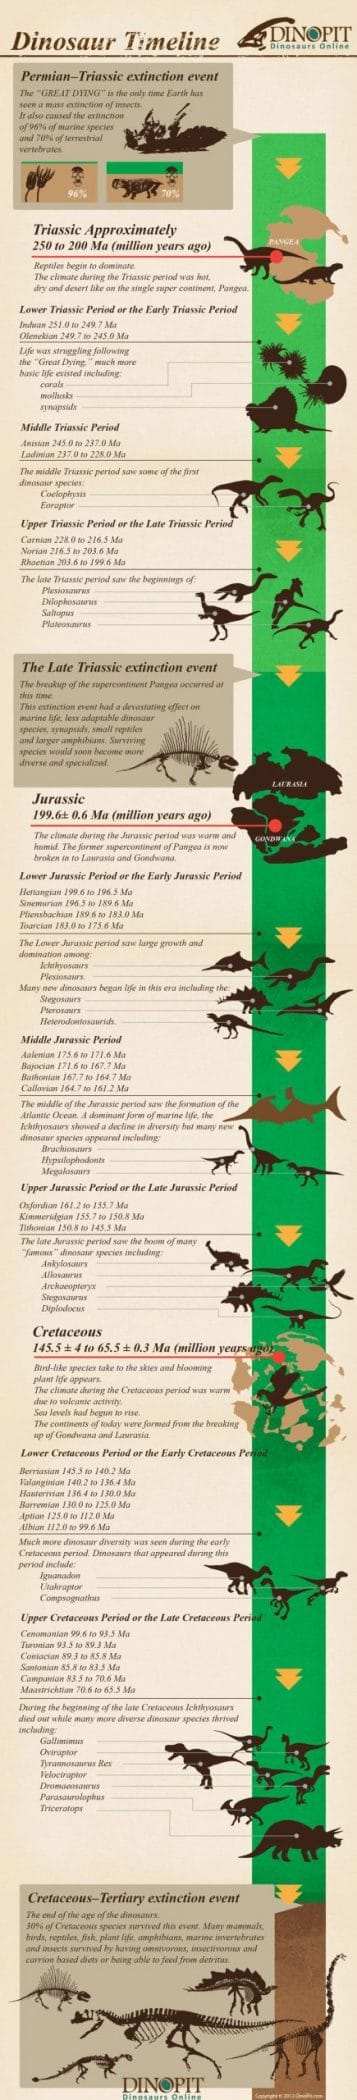 Dinosaur Infographic Timeline of History